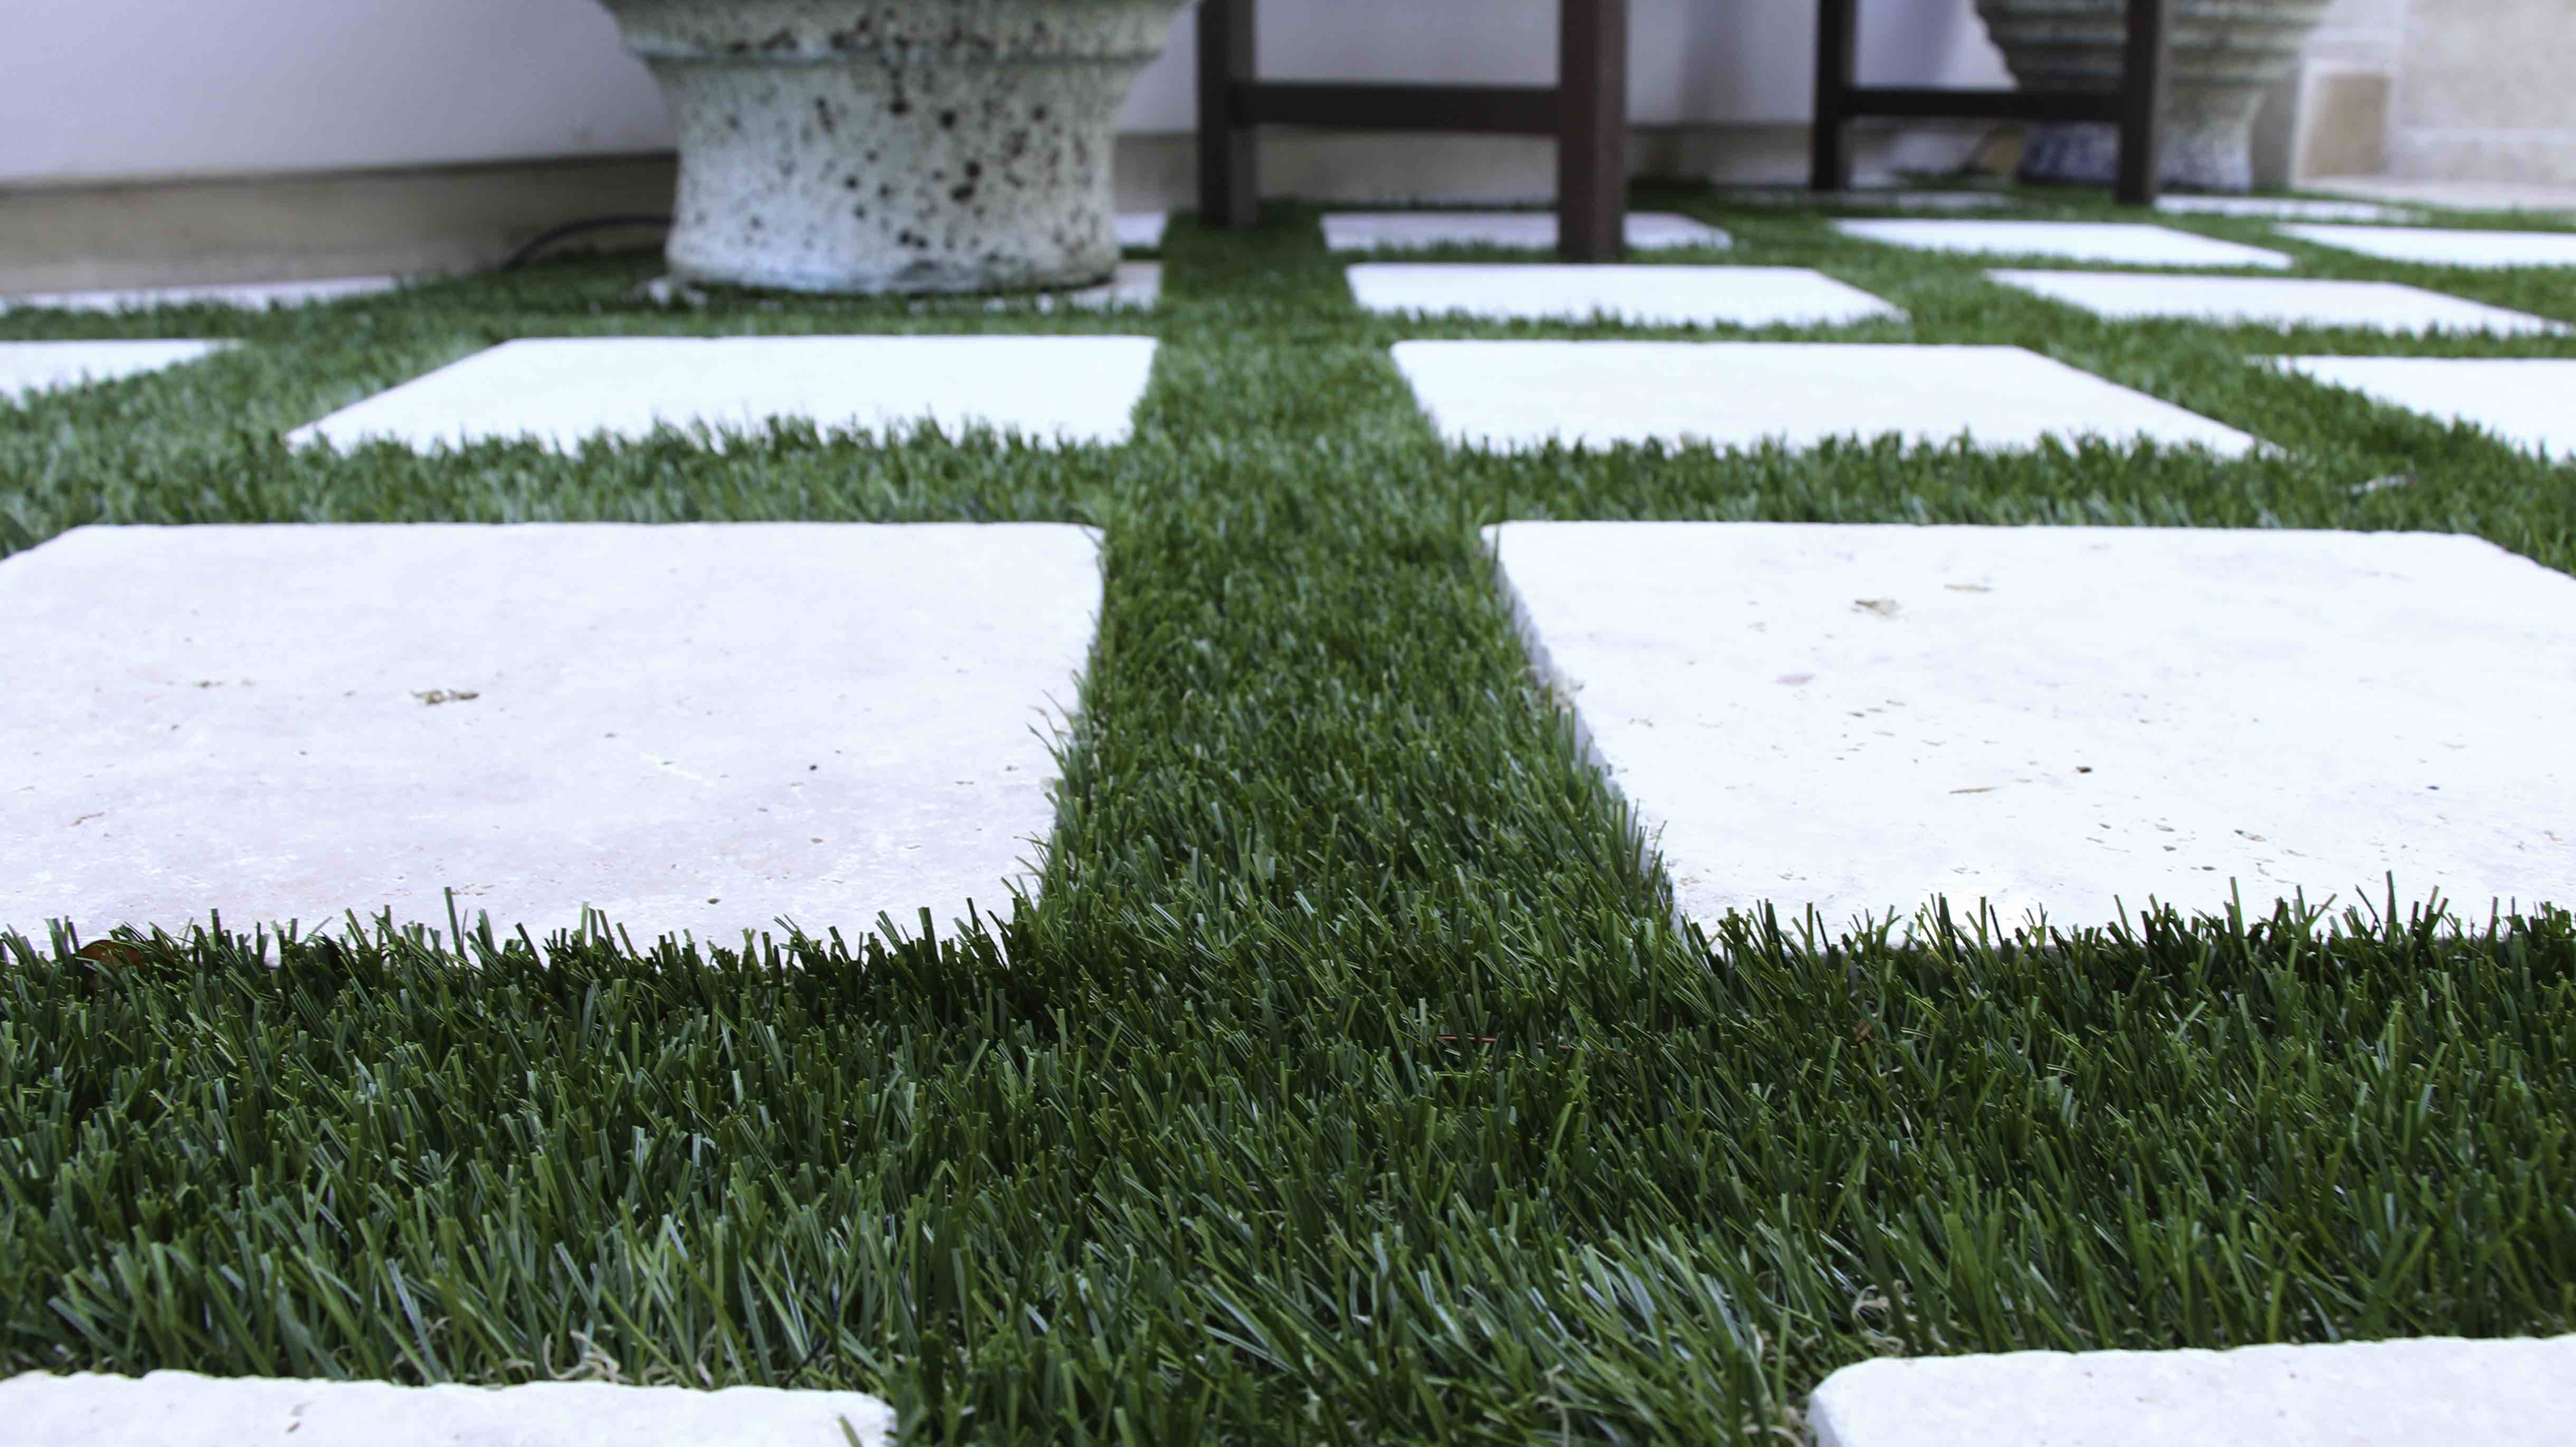 Sick of brown grass? Ask us about professional turf painting services